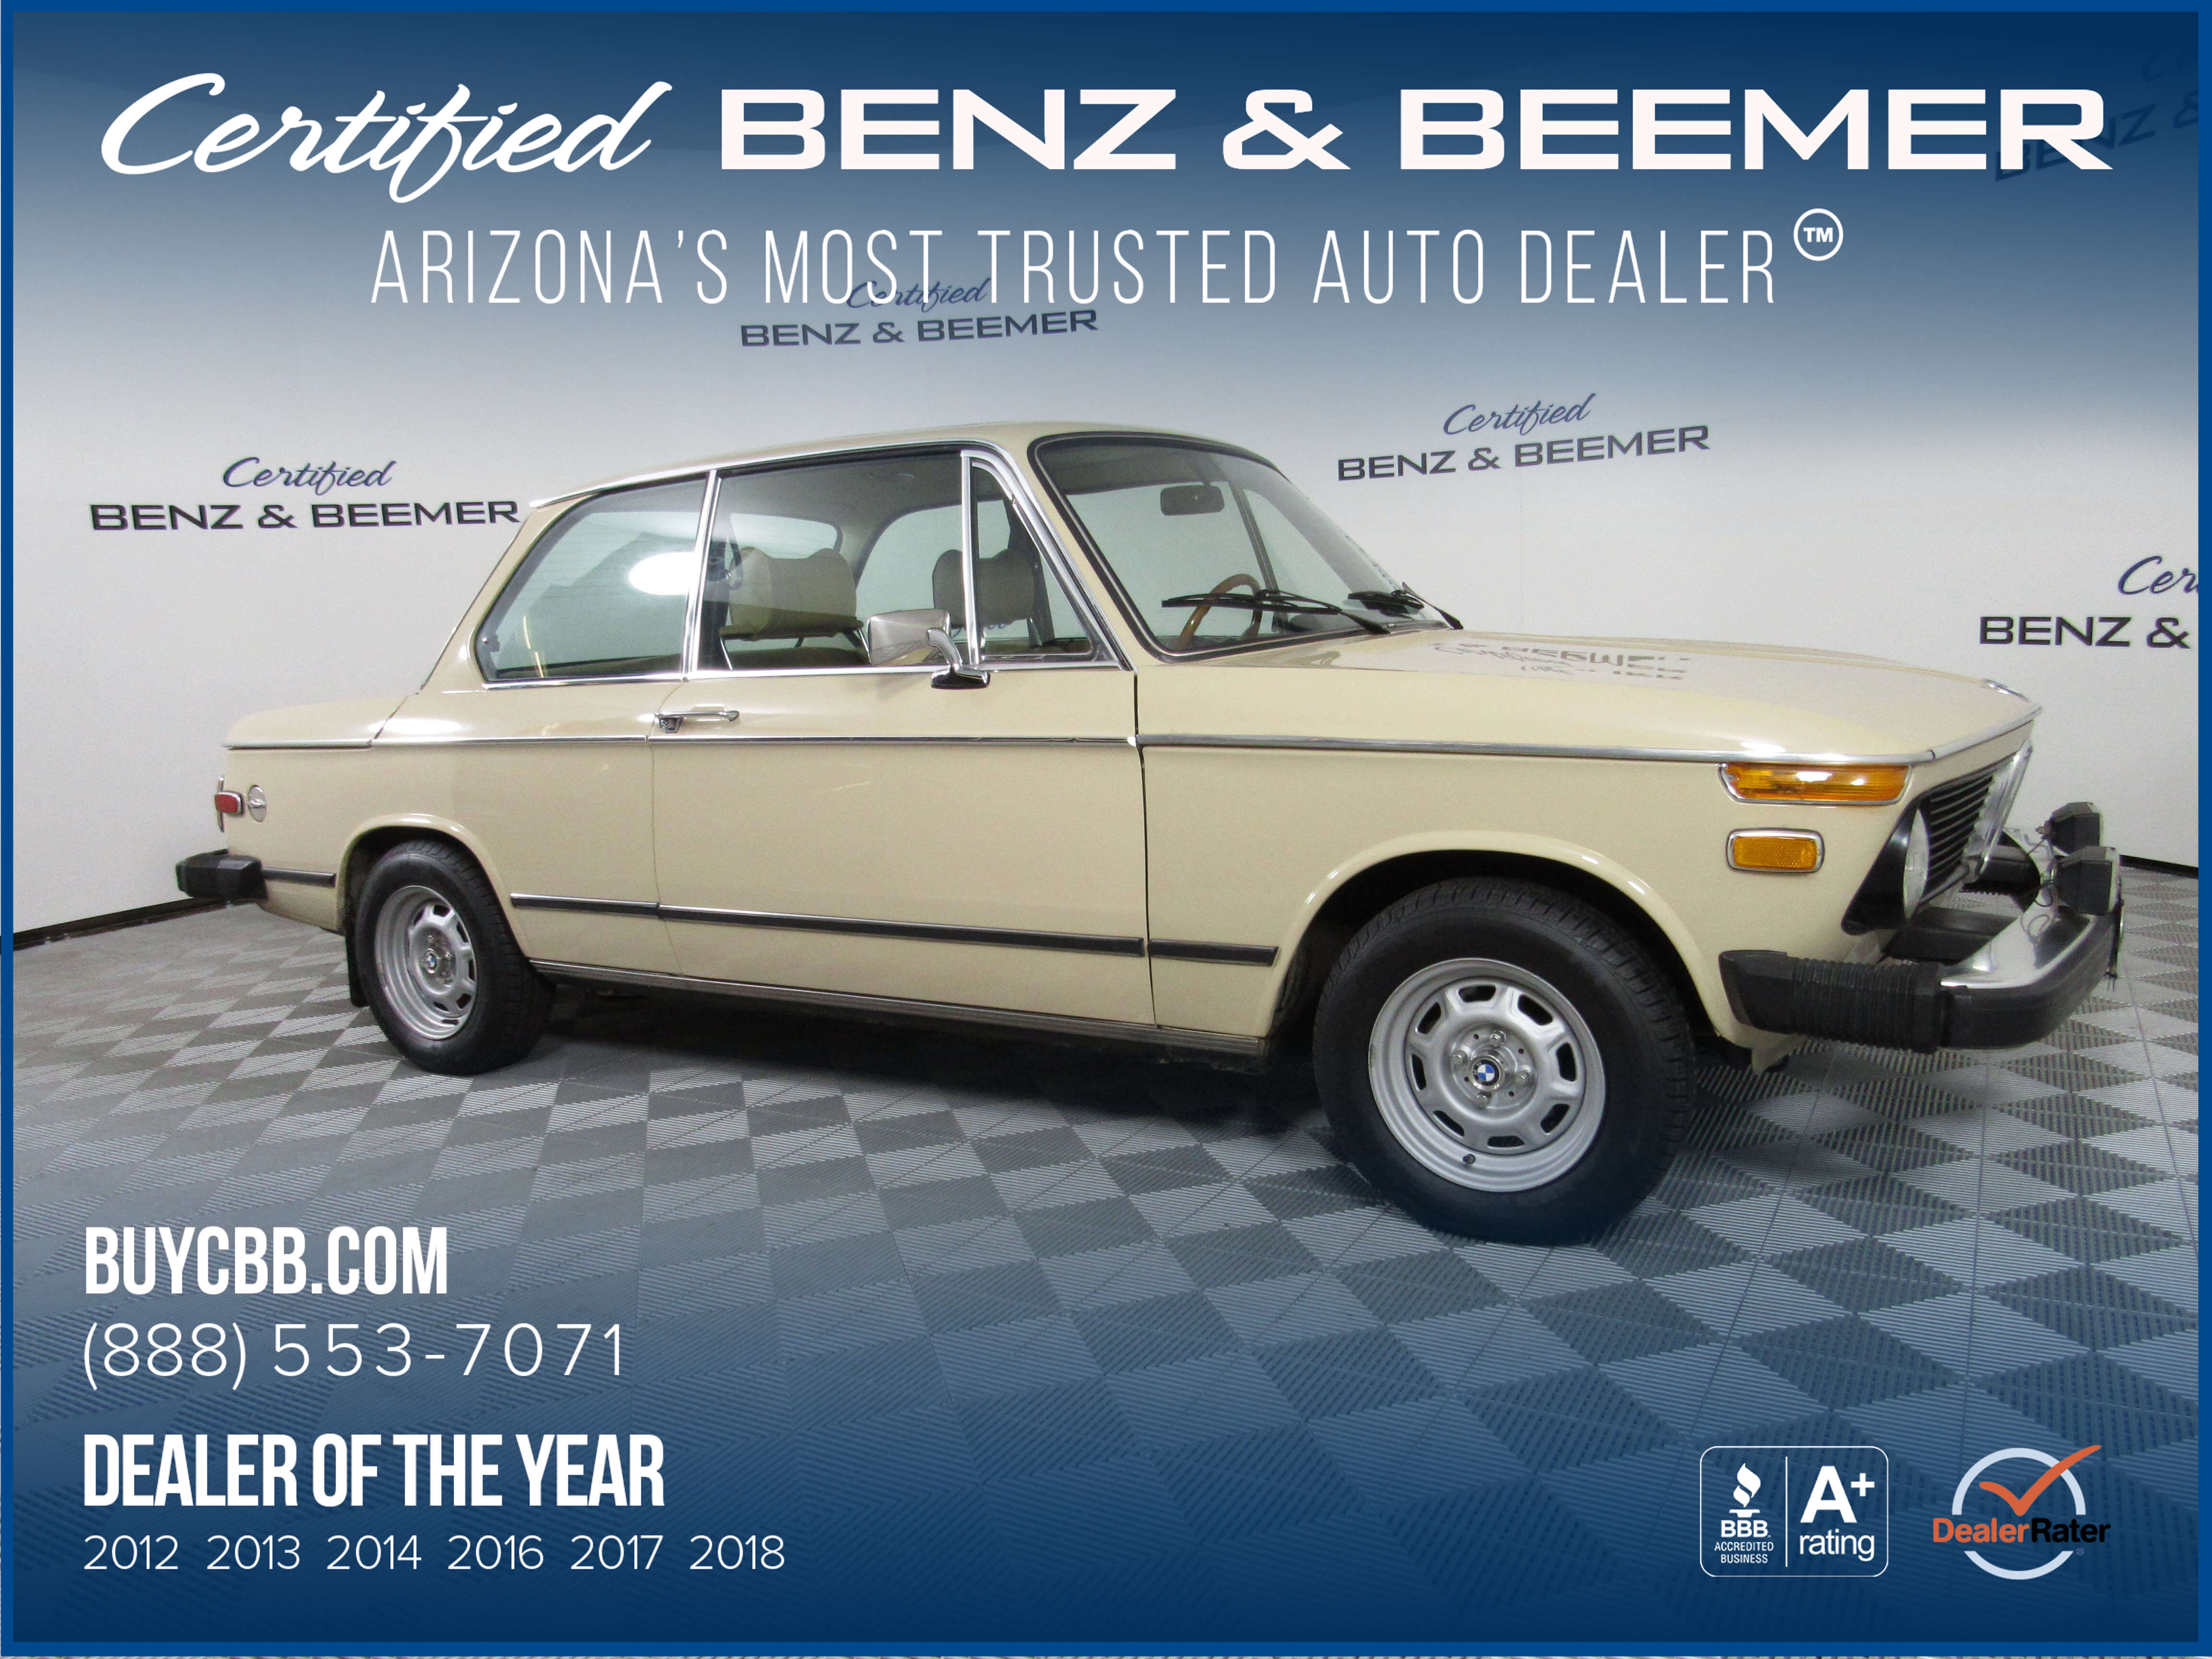 Certified Benz & Beemer - Used 1974 BMW 2002